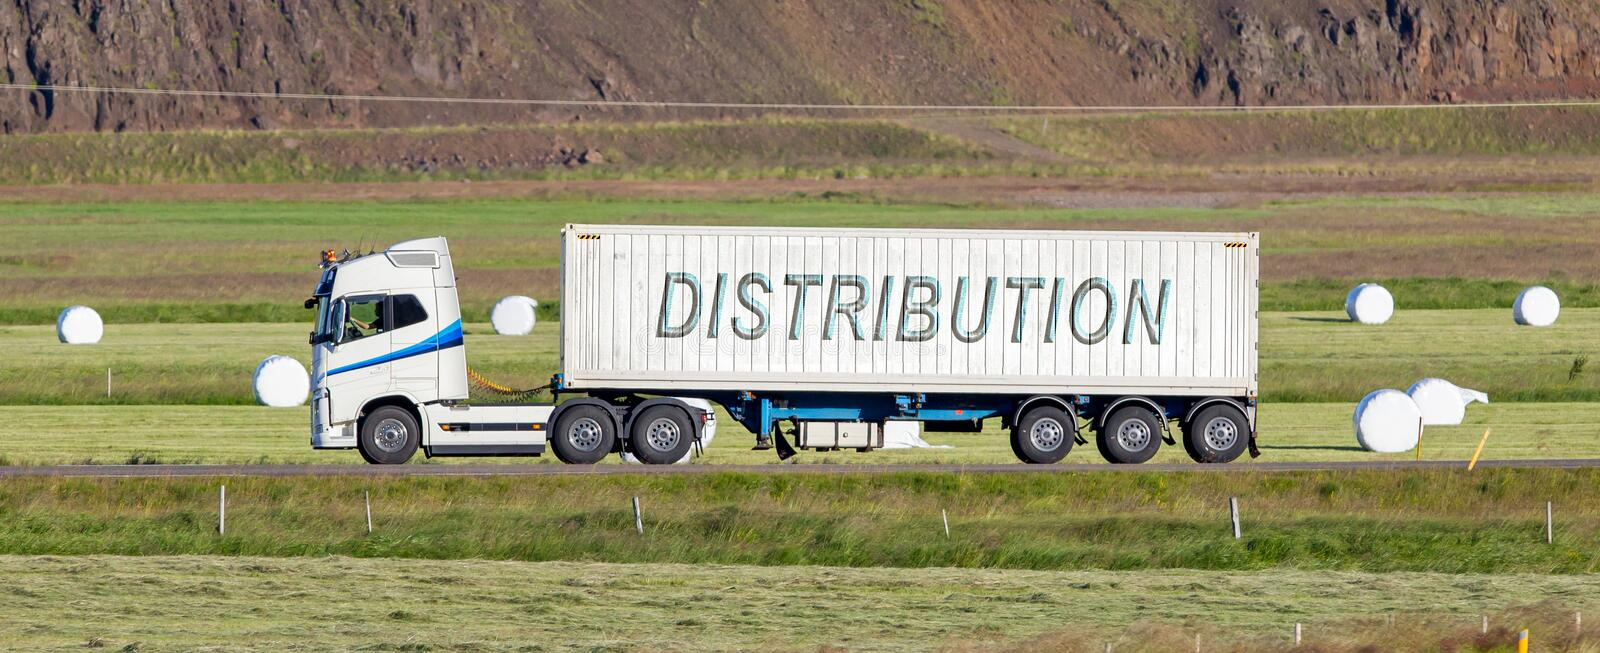 Camion conduisant par une zone rurale - distribution image libre de droits